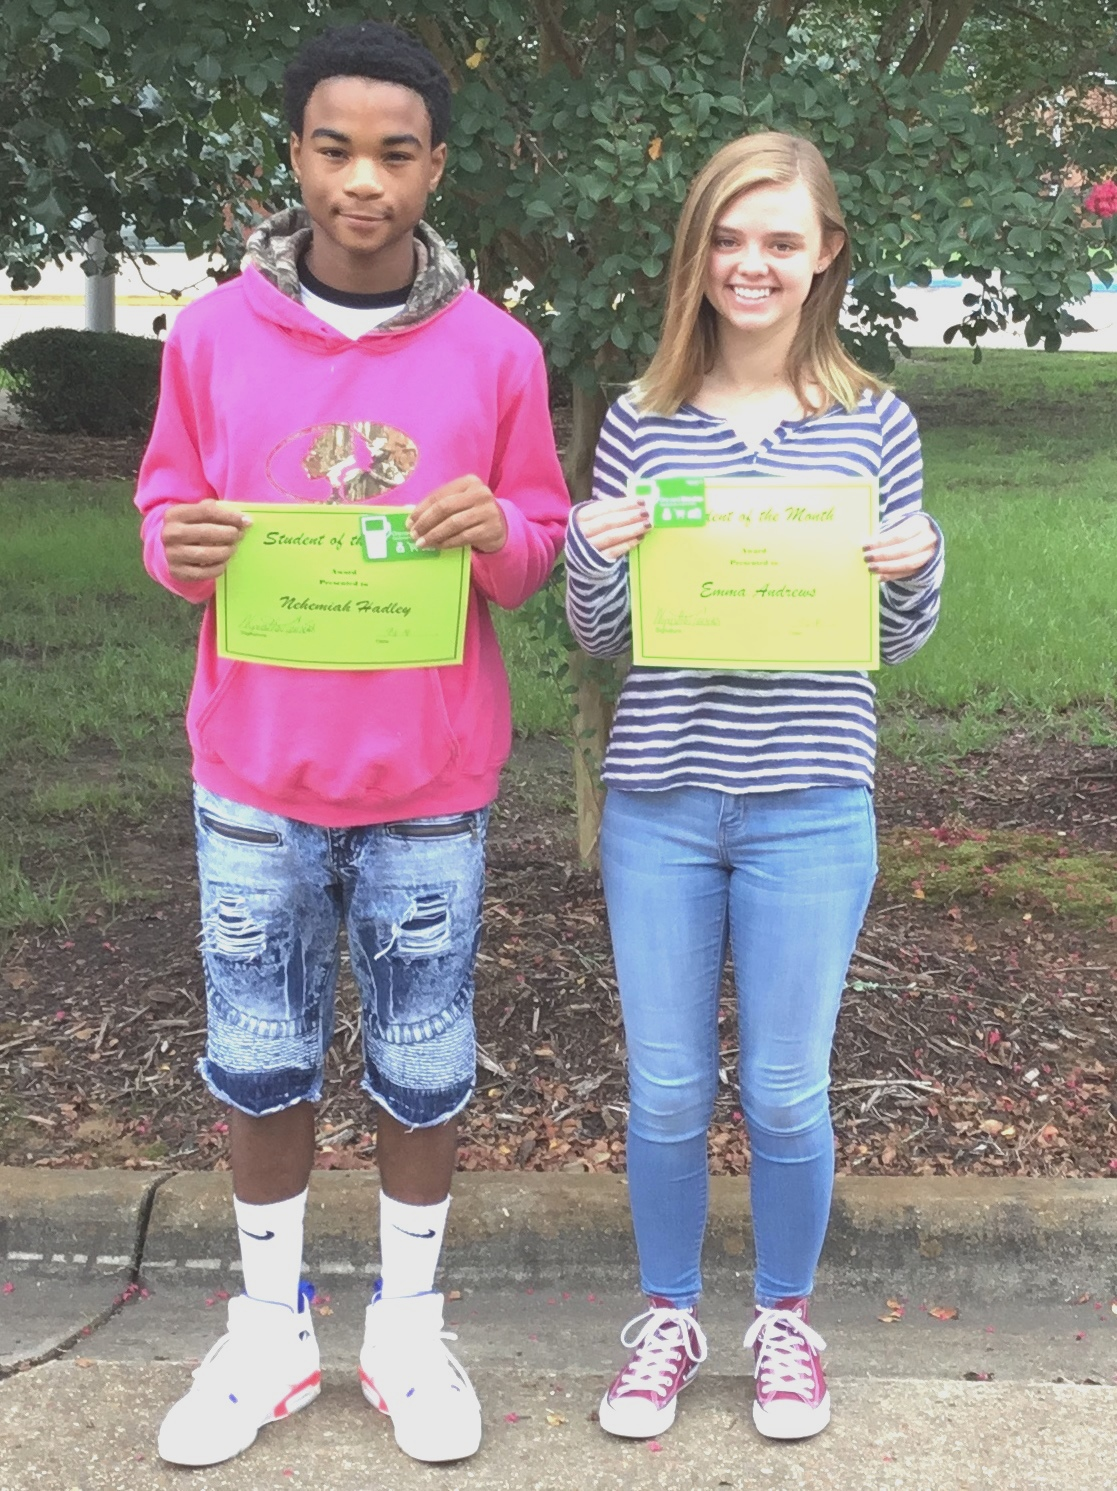 WPHS NORTH STUDENT'S OF THE MONTH FOR AUGUST